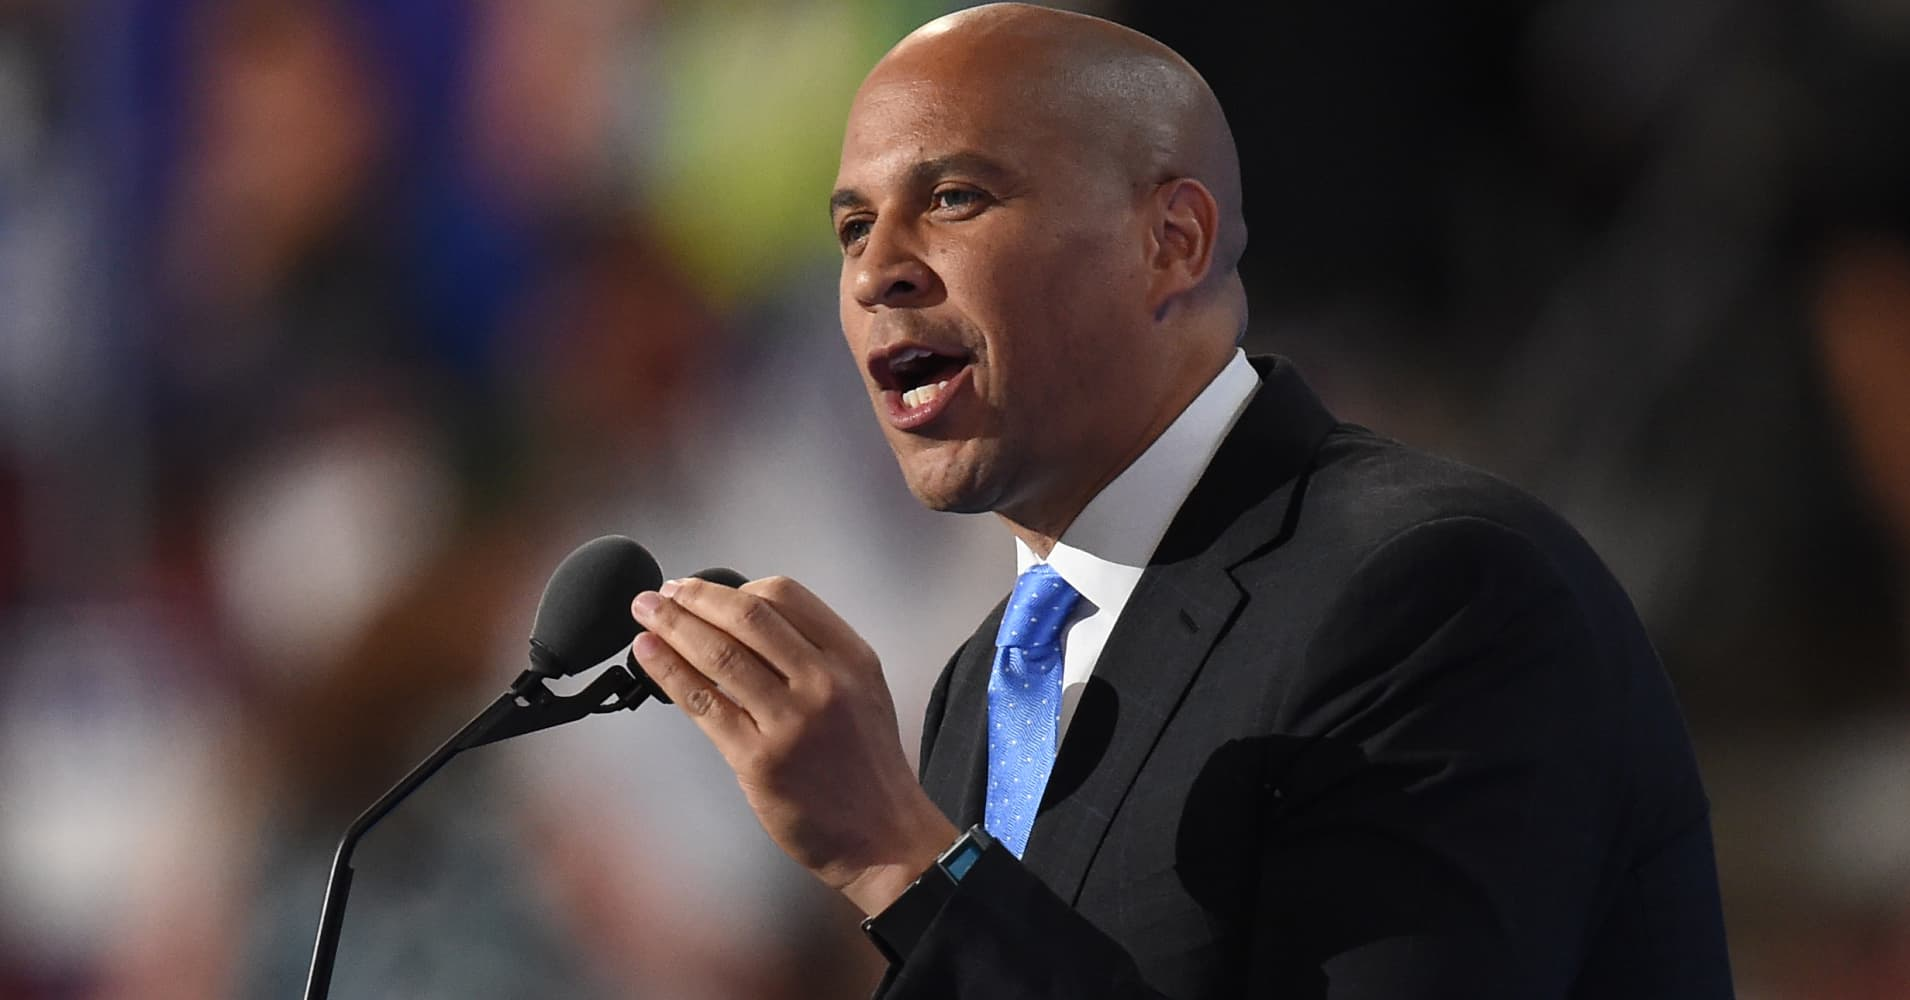 Dem Rising Star Cory Booker Delivers Emotional Speech